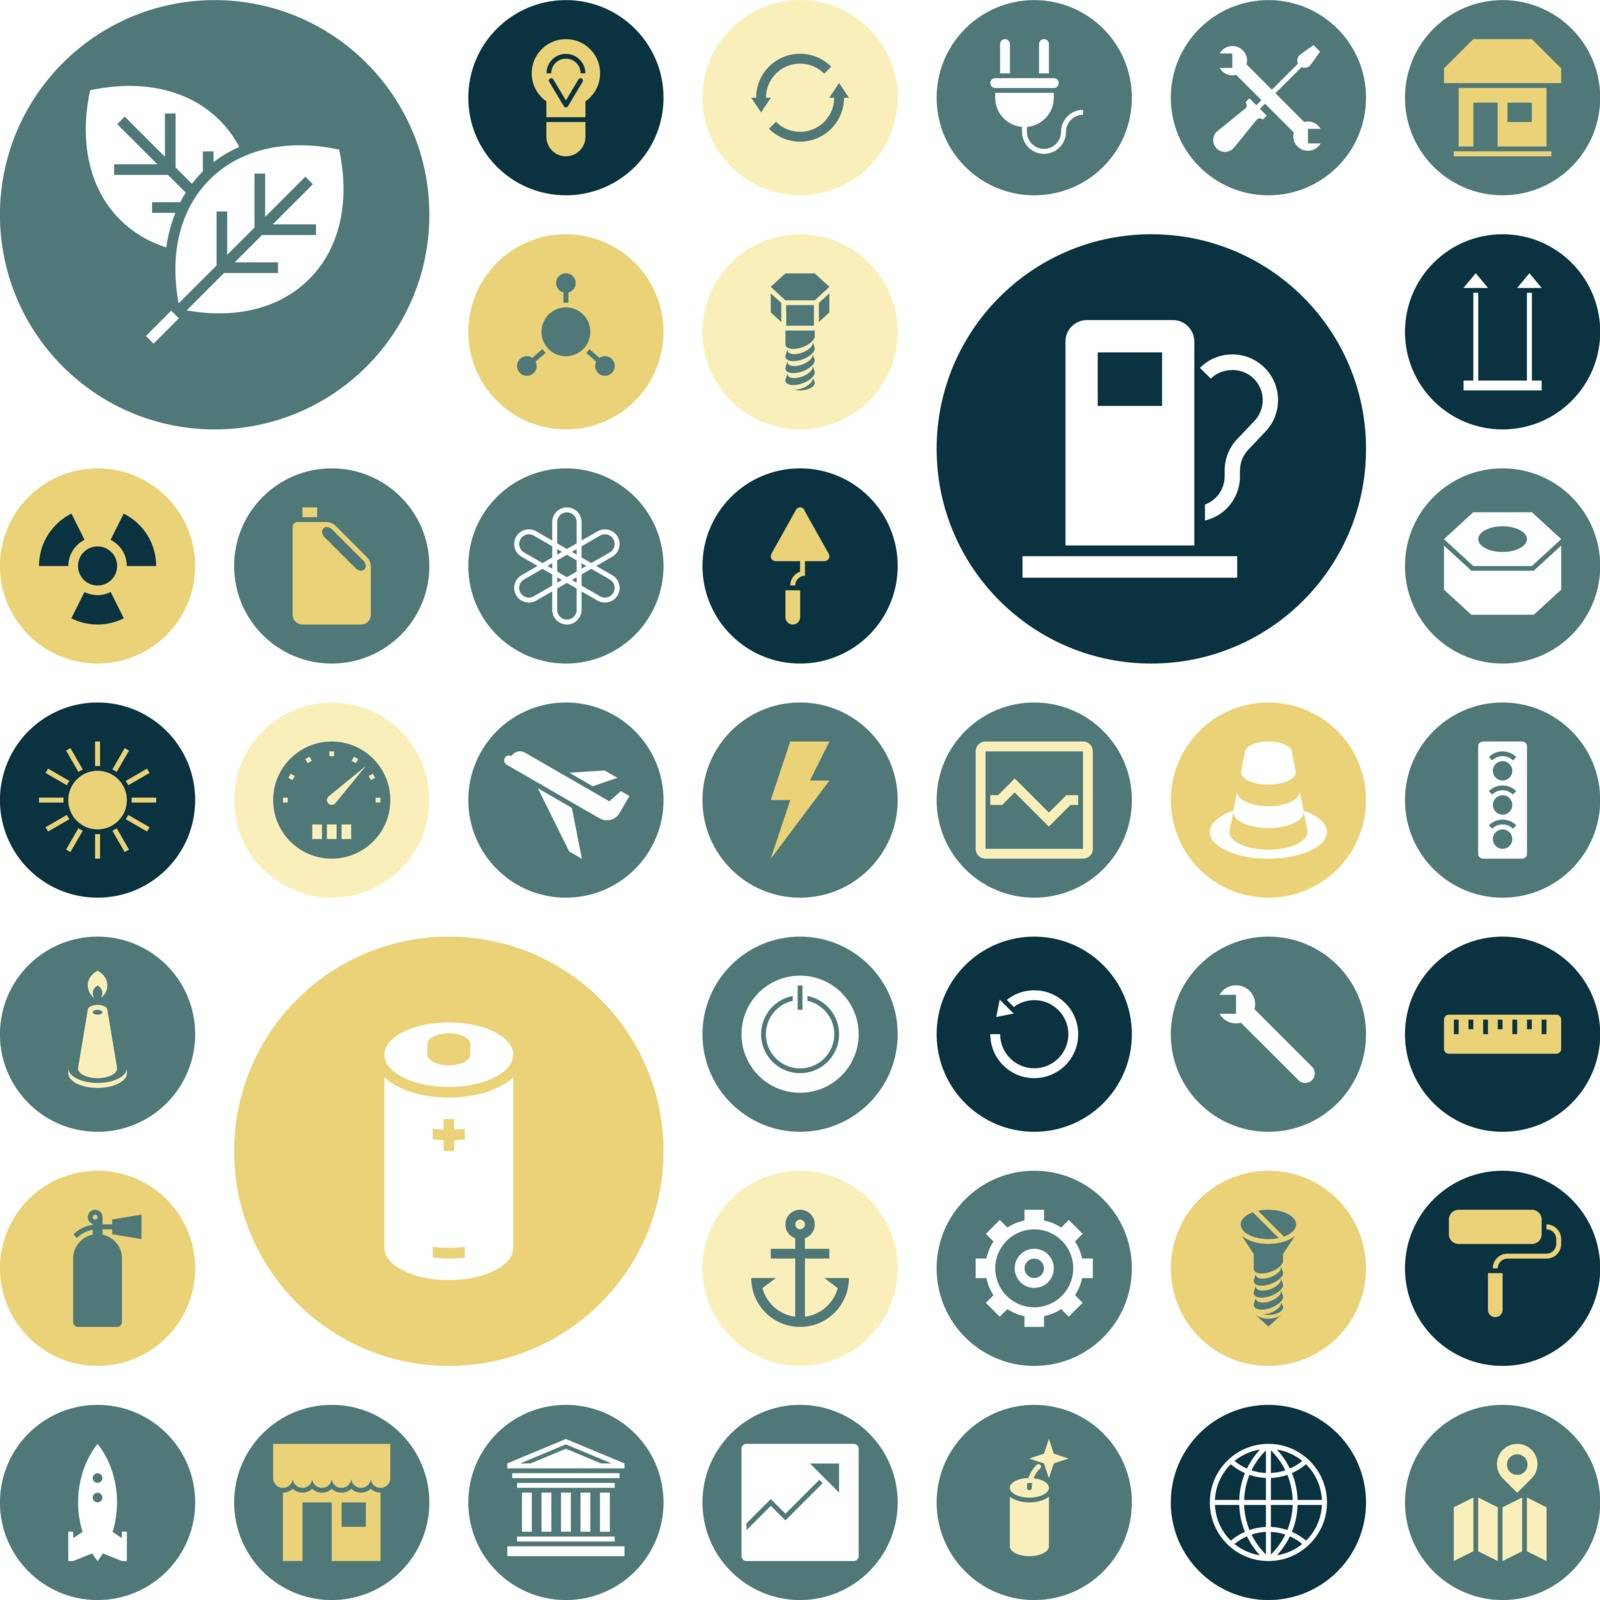 Flat design icons for industrial, energy and ecology. Vector illustration.